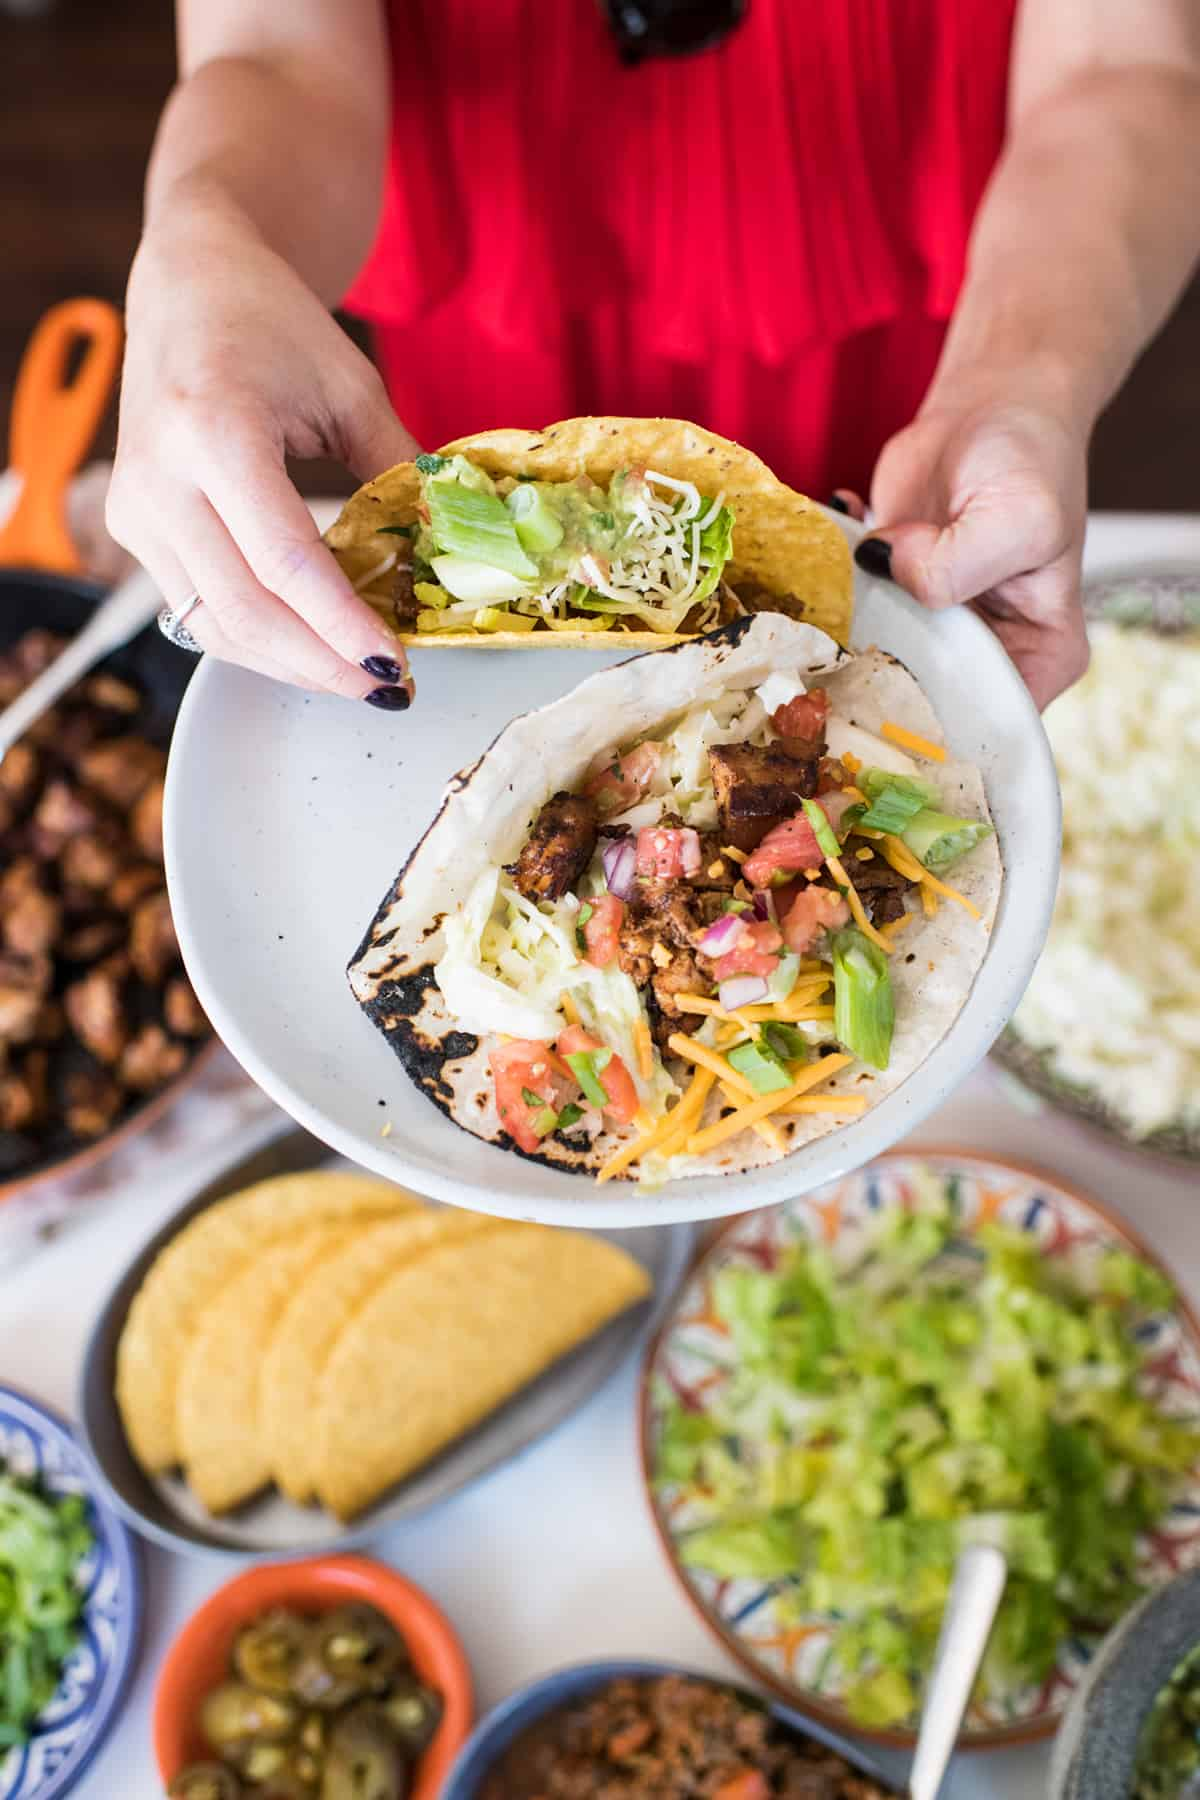 Taco bar ideas and spread on table